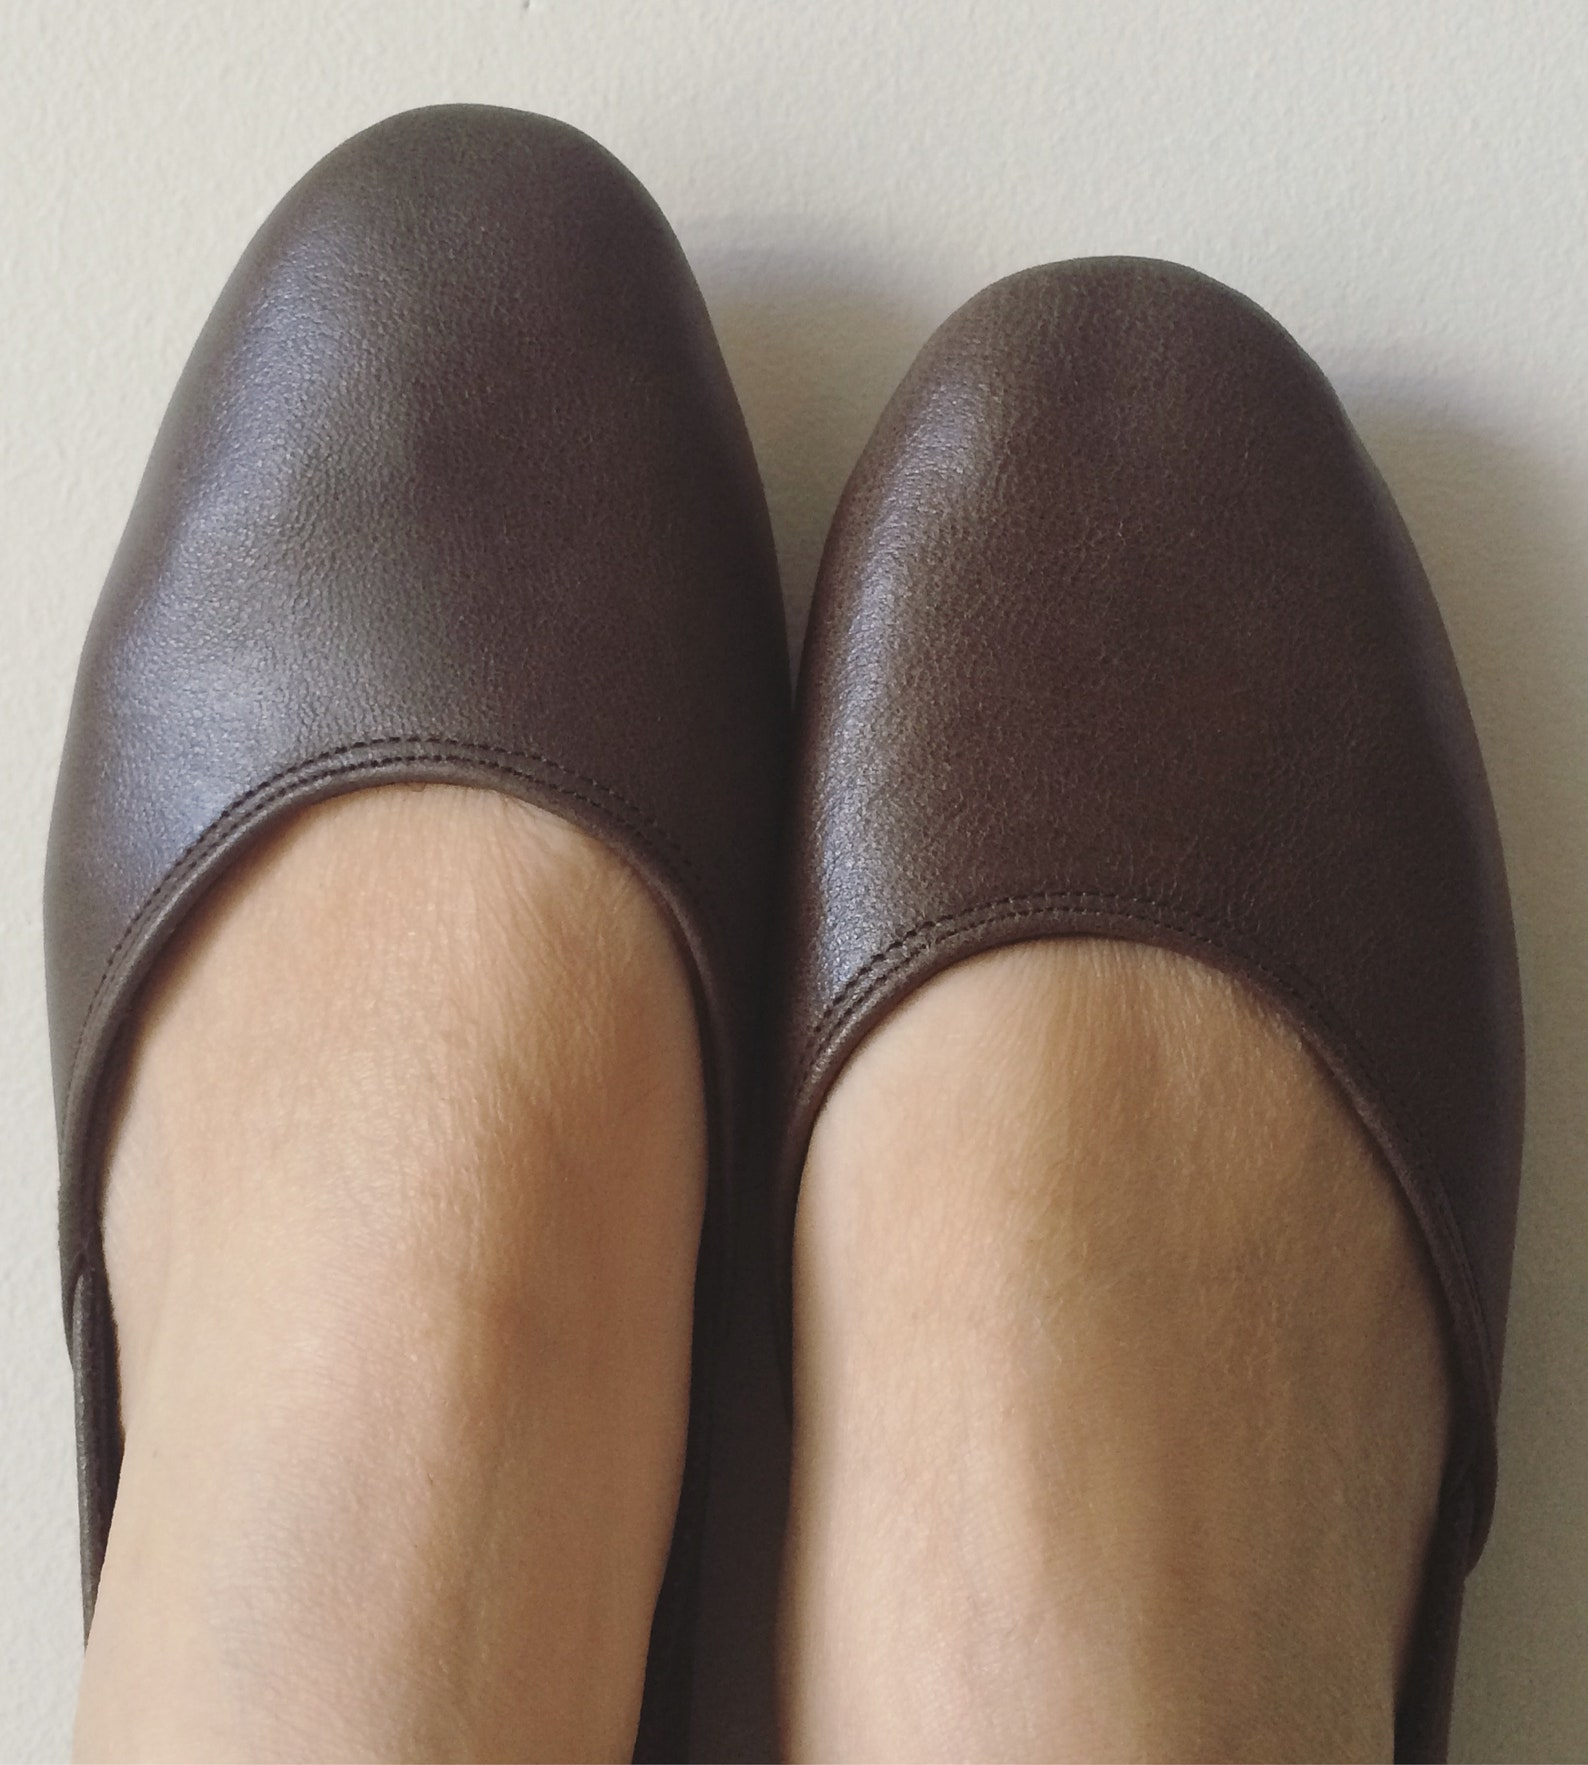 maya. aged brown leather ballet flats/ women's leather shoes/ brown flats. available in different colours & sizes